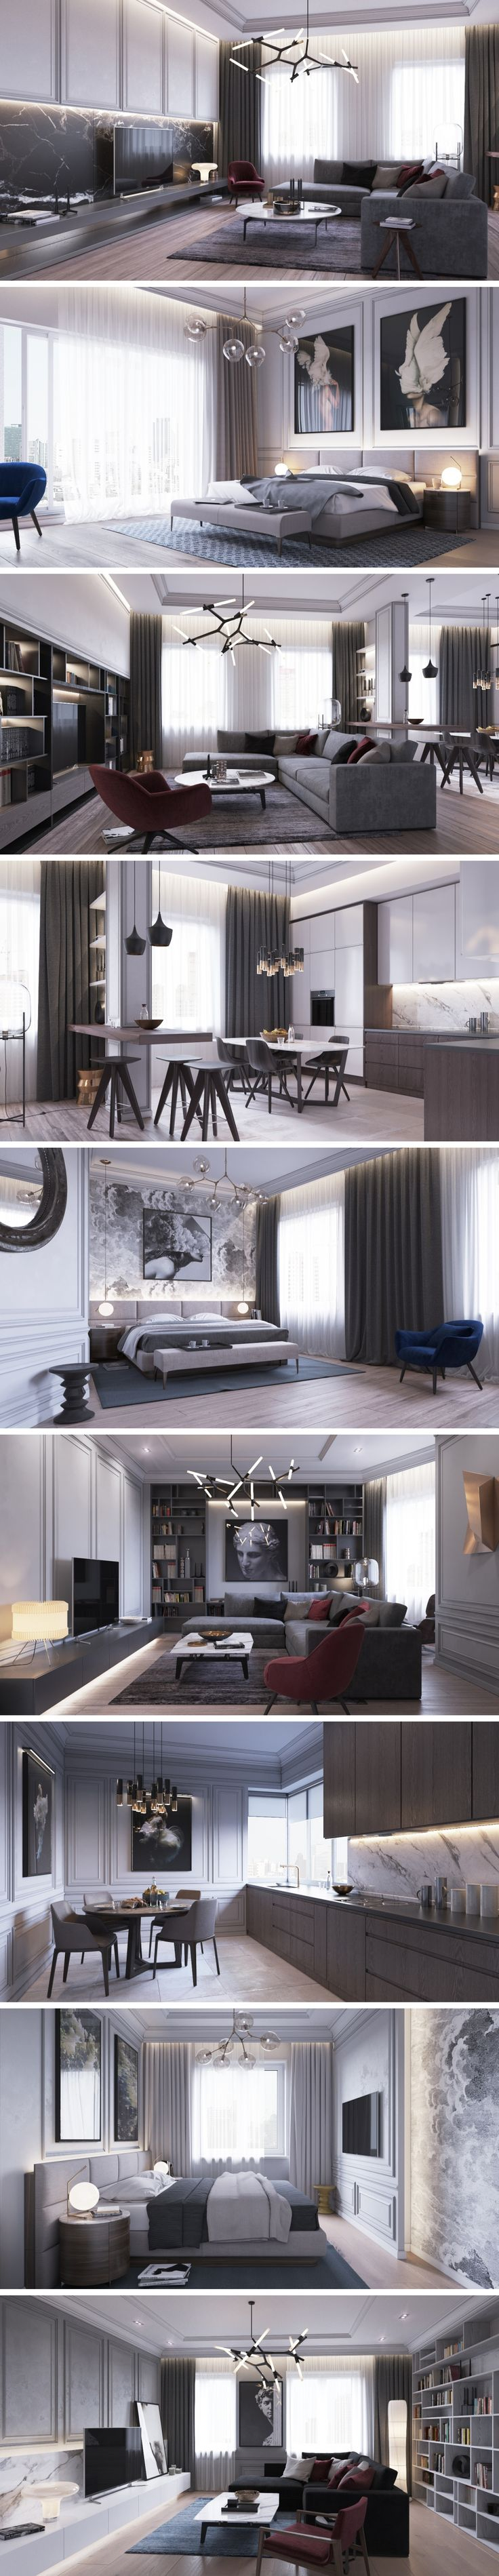 some really nice elements in this apartment lindsey adelman lighting panelling and artwork